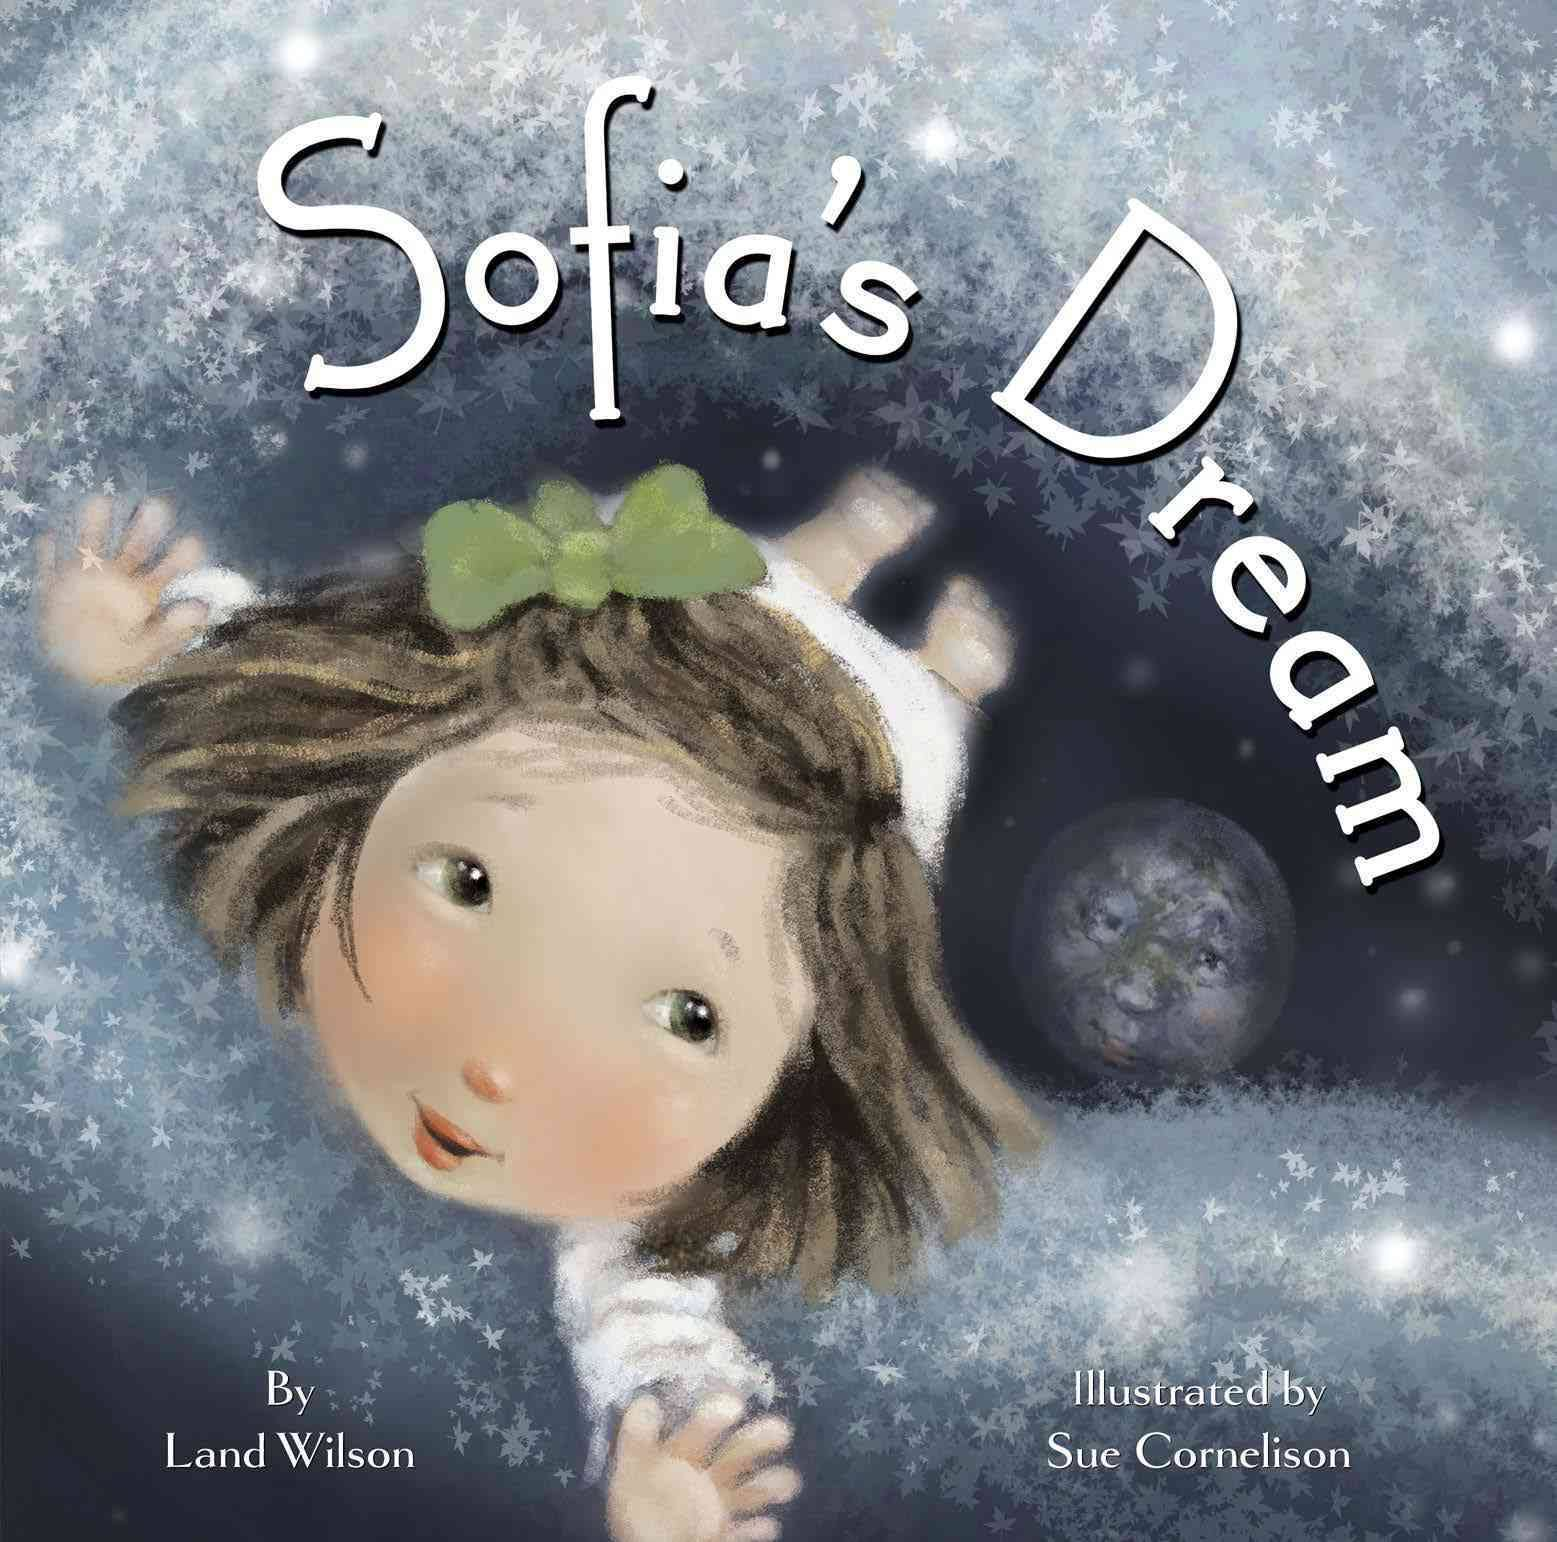 Cover art for Sofia's dream